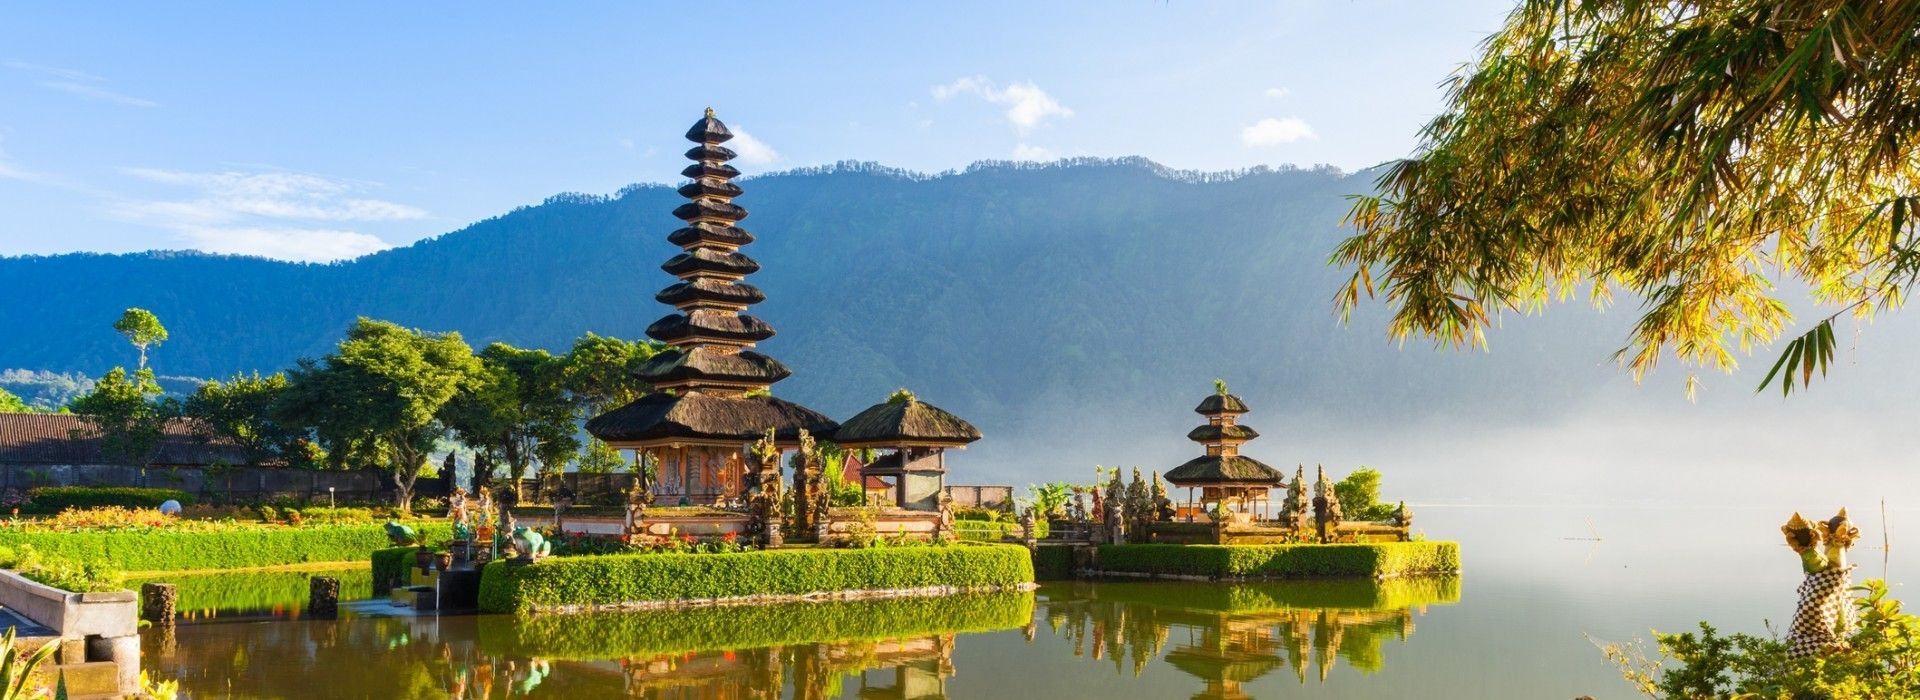 Boat tours, water sports and marine wildlife in Bali